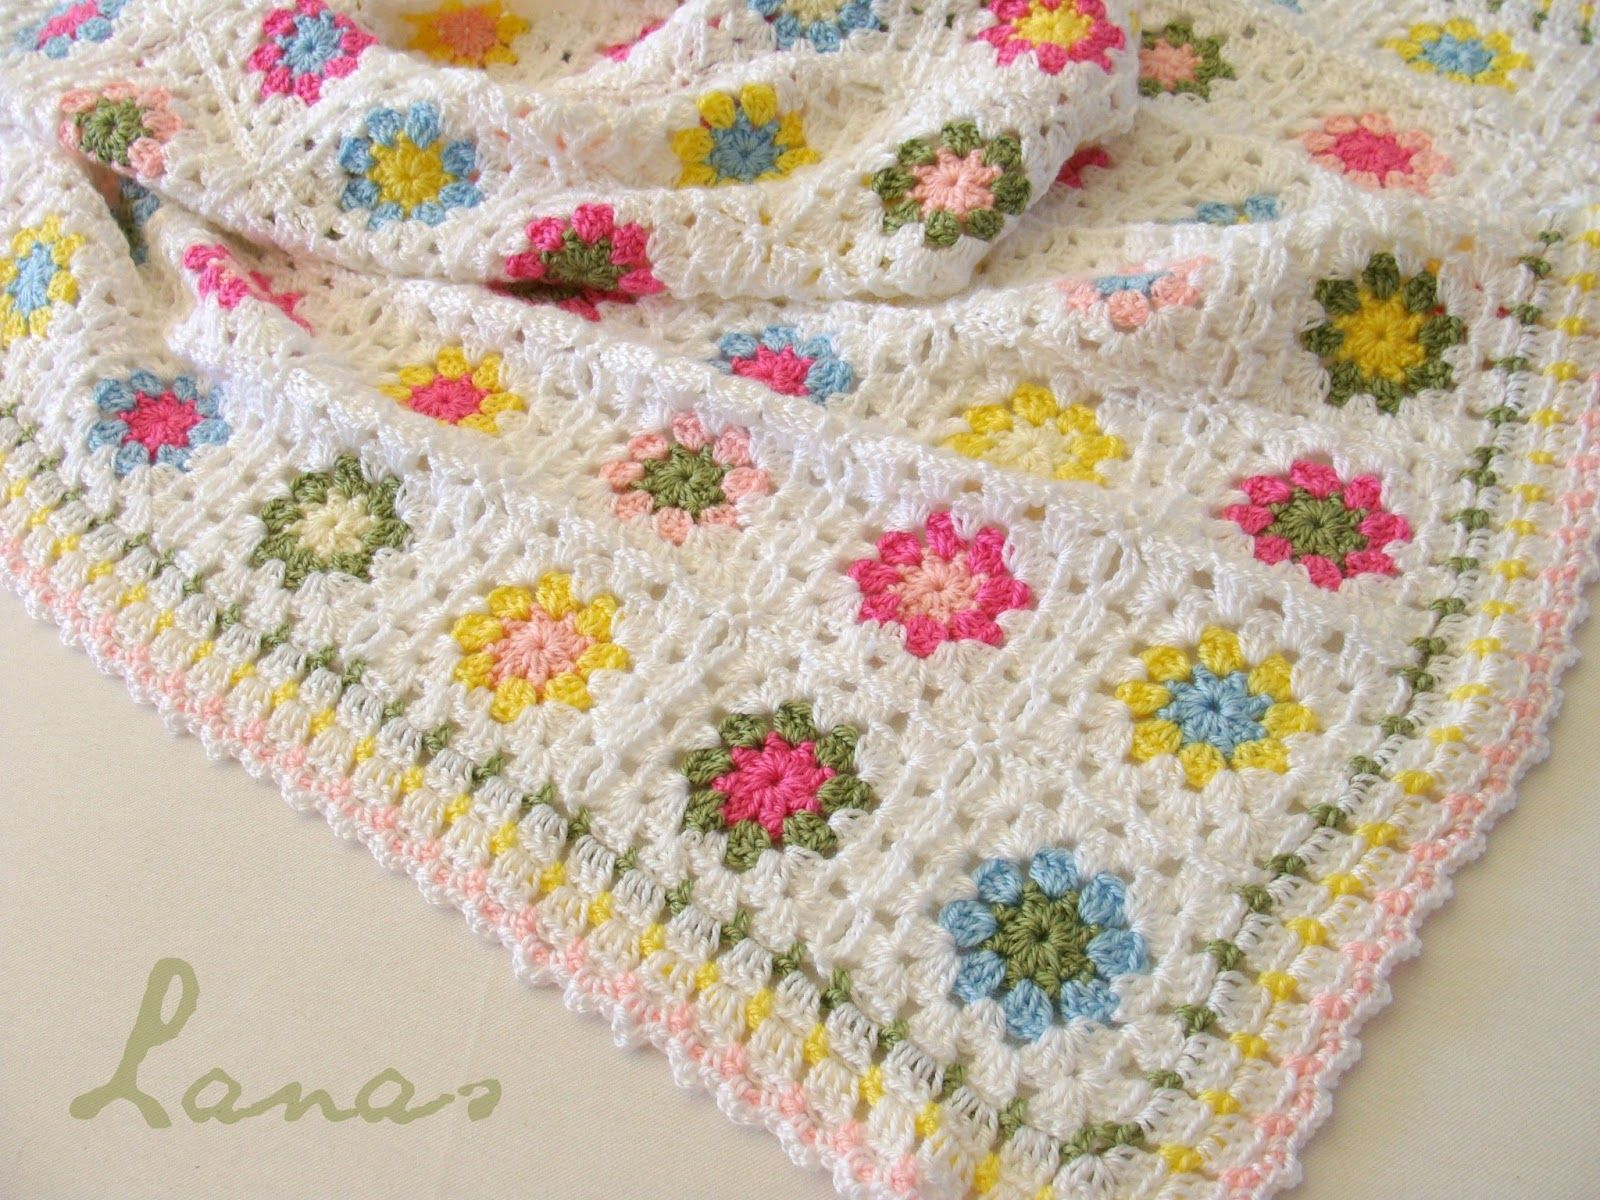 Lanas de Ana: Chichi's Summer Garden. Pretty version of Lucy's Summer Garden pattern here: http://attic24.typepad.com/weblog/summer-garden-granny-square.html